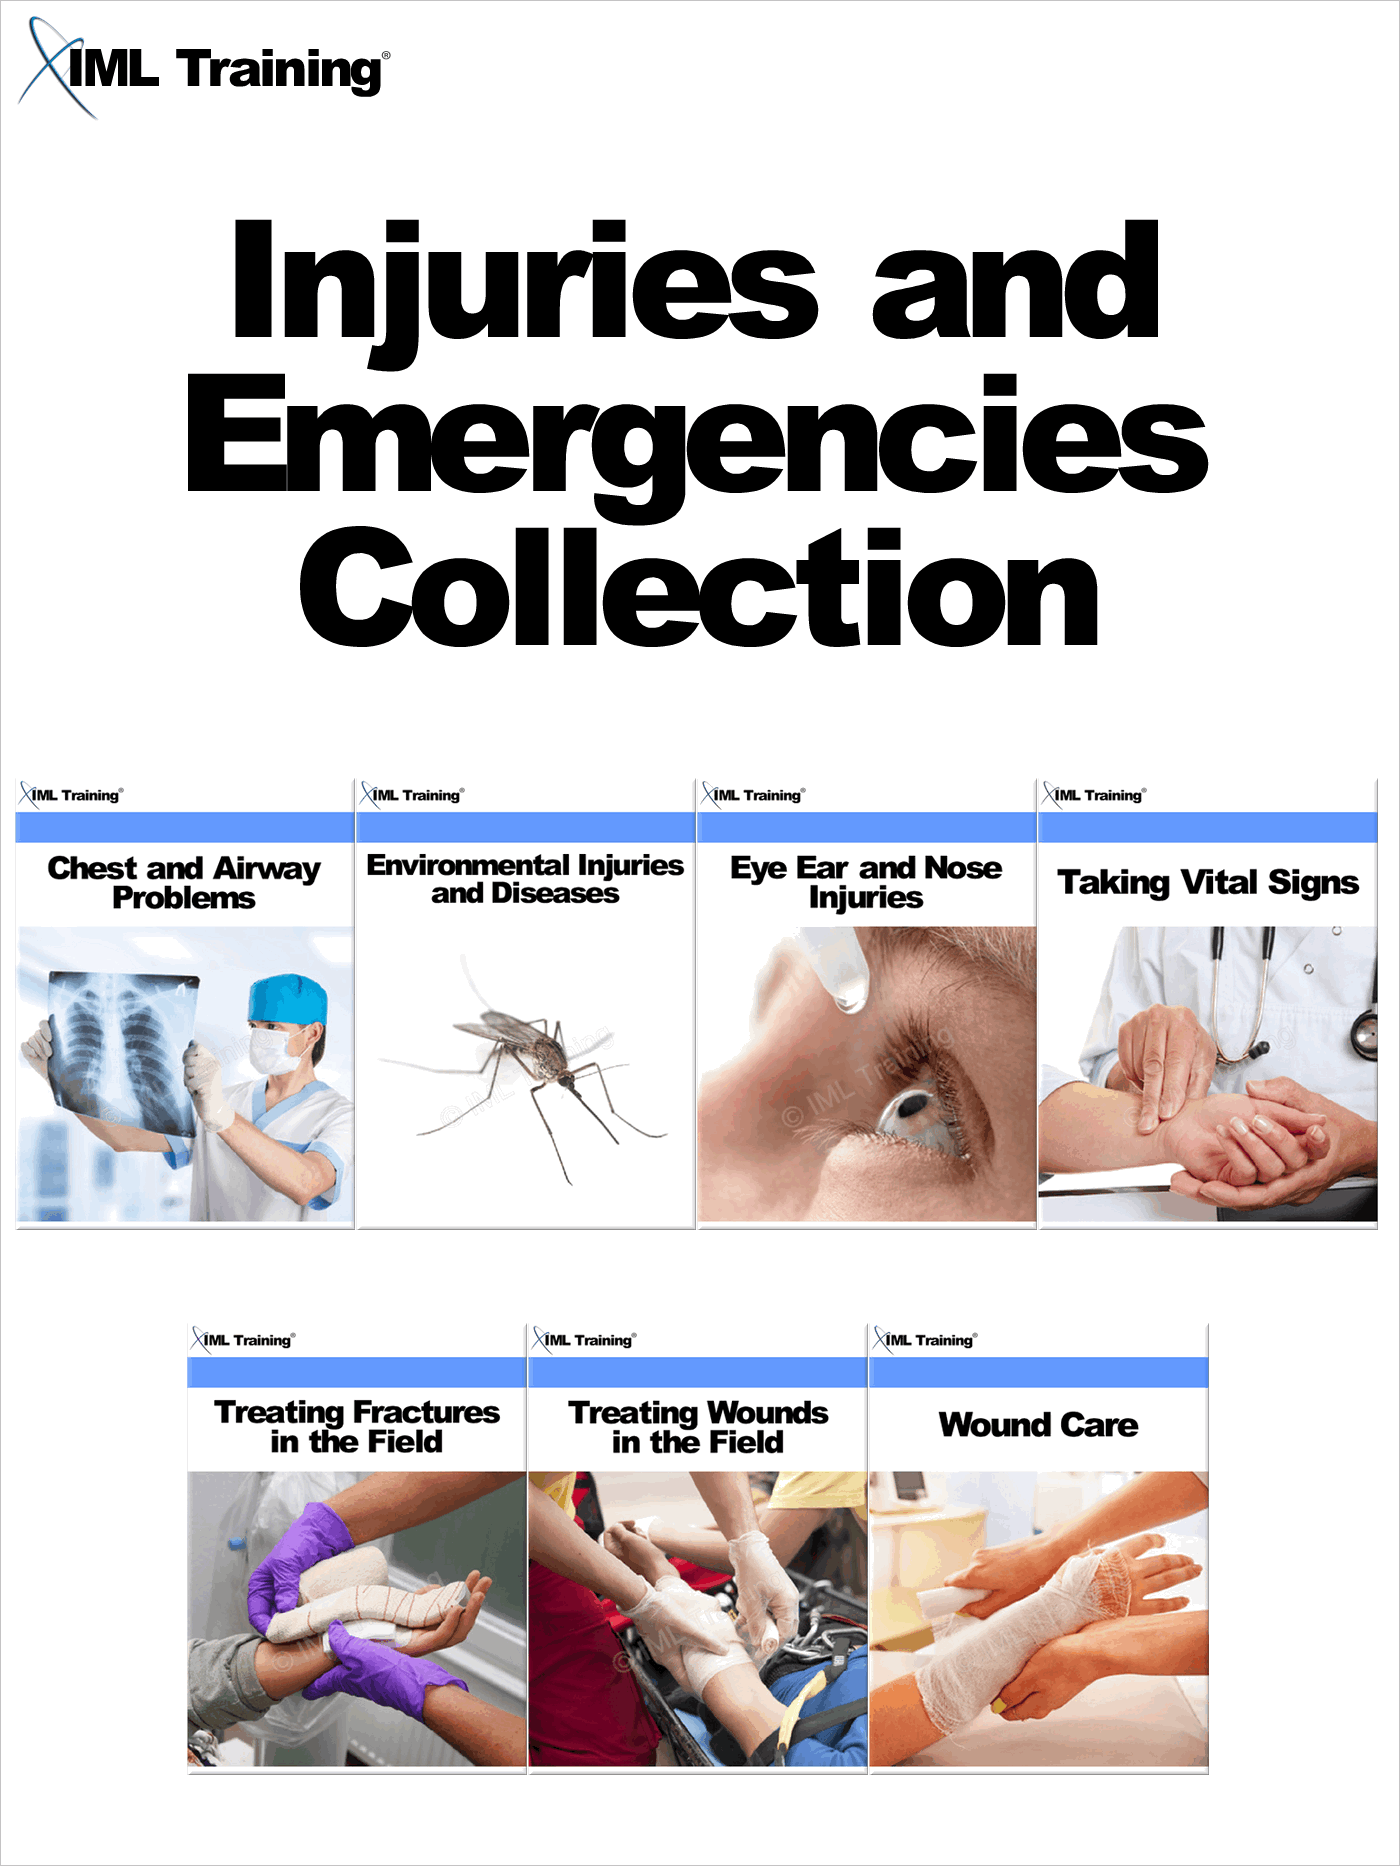 Injuries and Emergencies Collection Includes Chest and Airway Problems,  Environmental Injuries and Diseases,  Eye Ear and Nose Injuries,  Taking Vital S